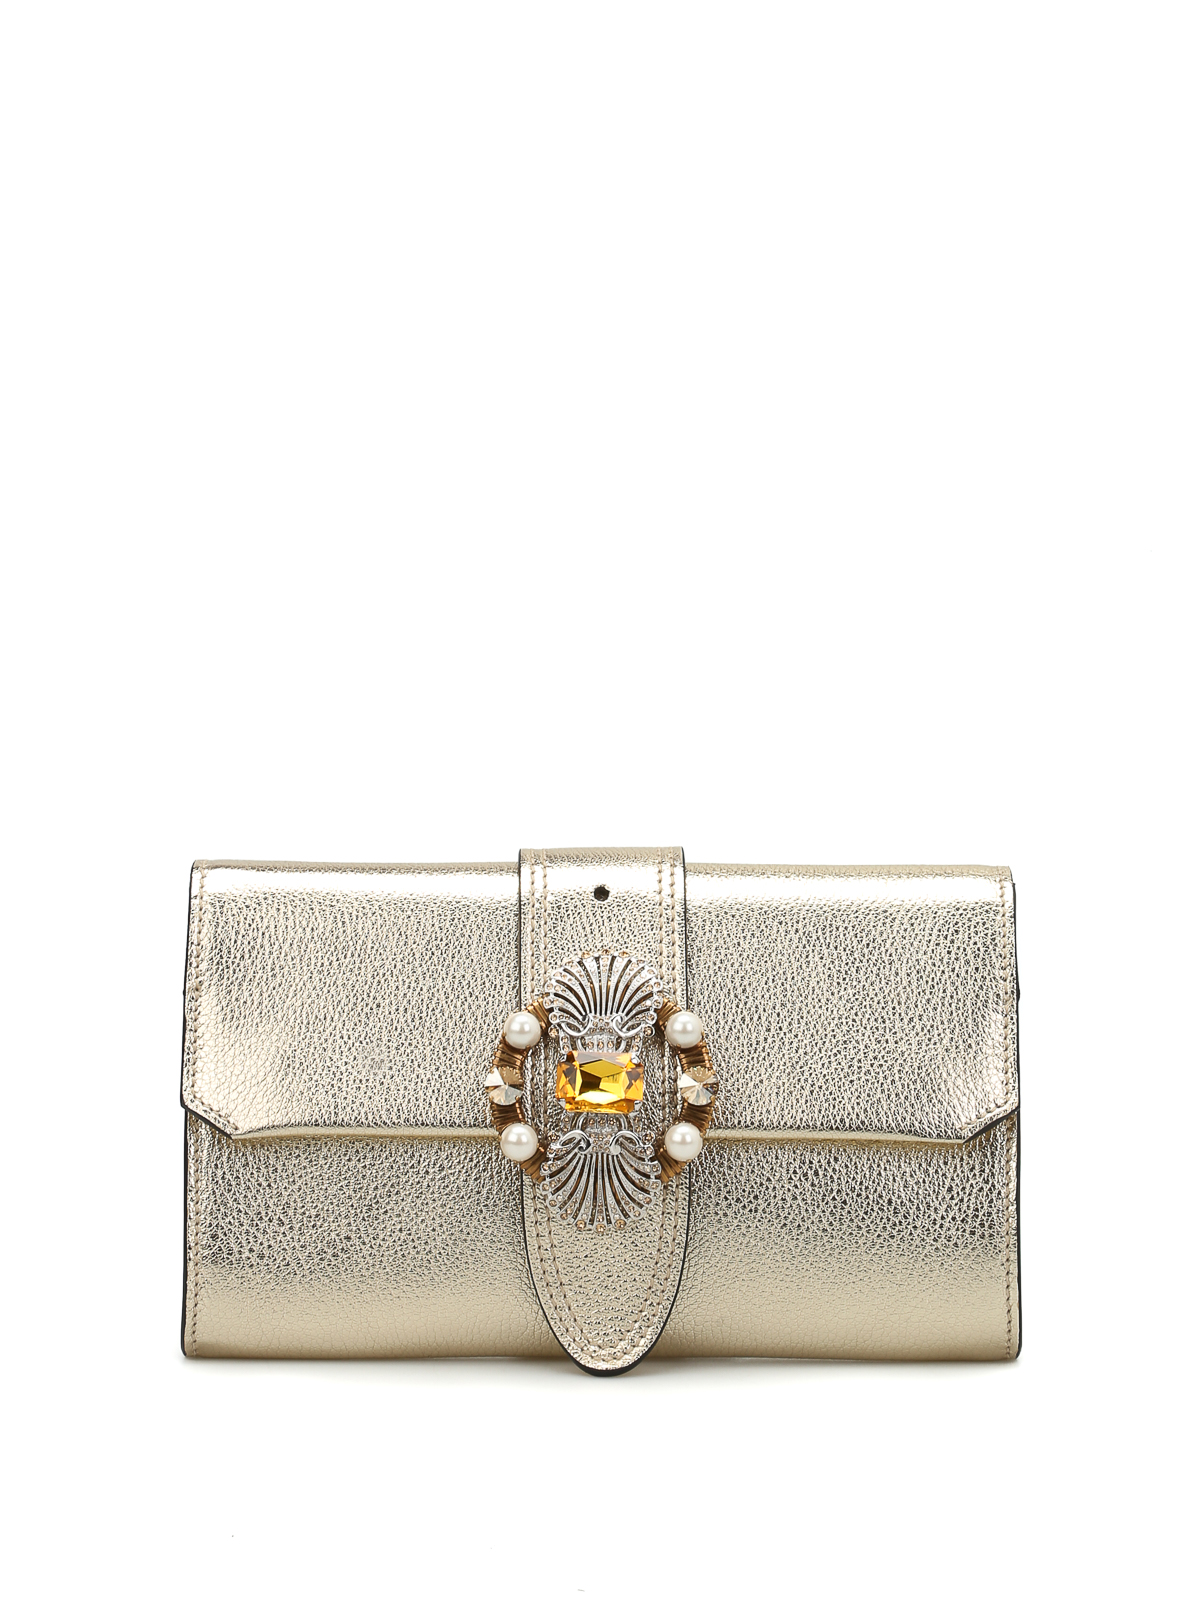 1f73452851cc Miu Miu - Jewel bag with chain shoulder strap - cross body bags ...